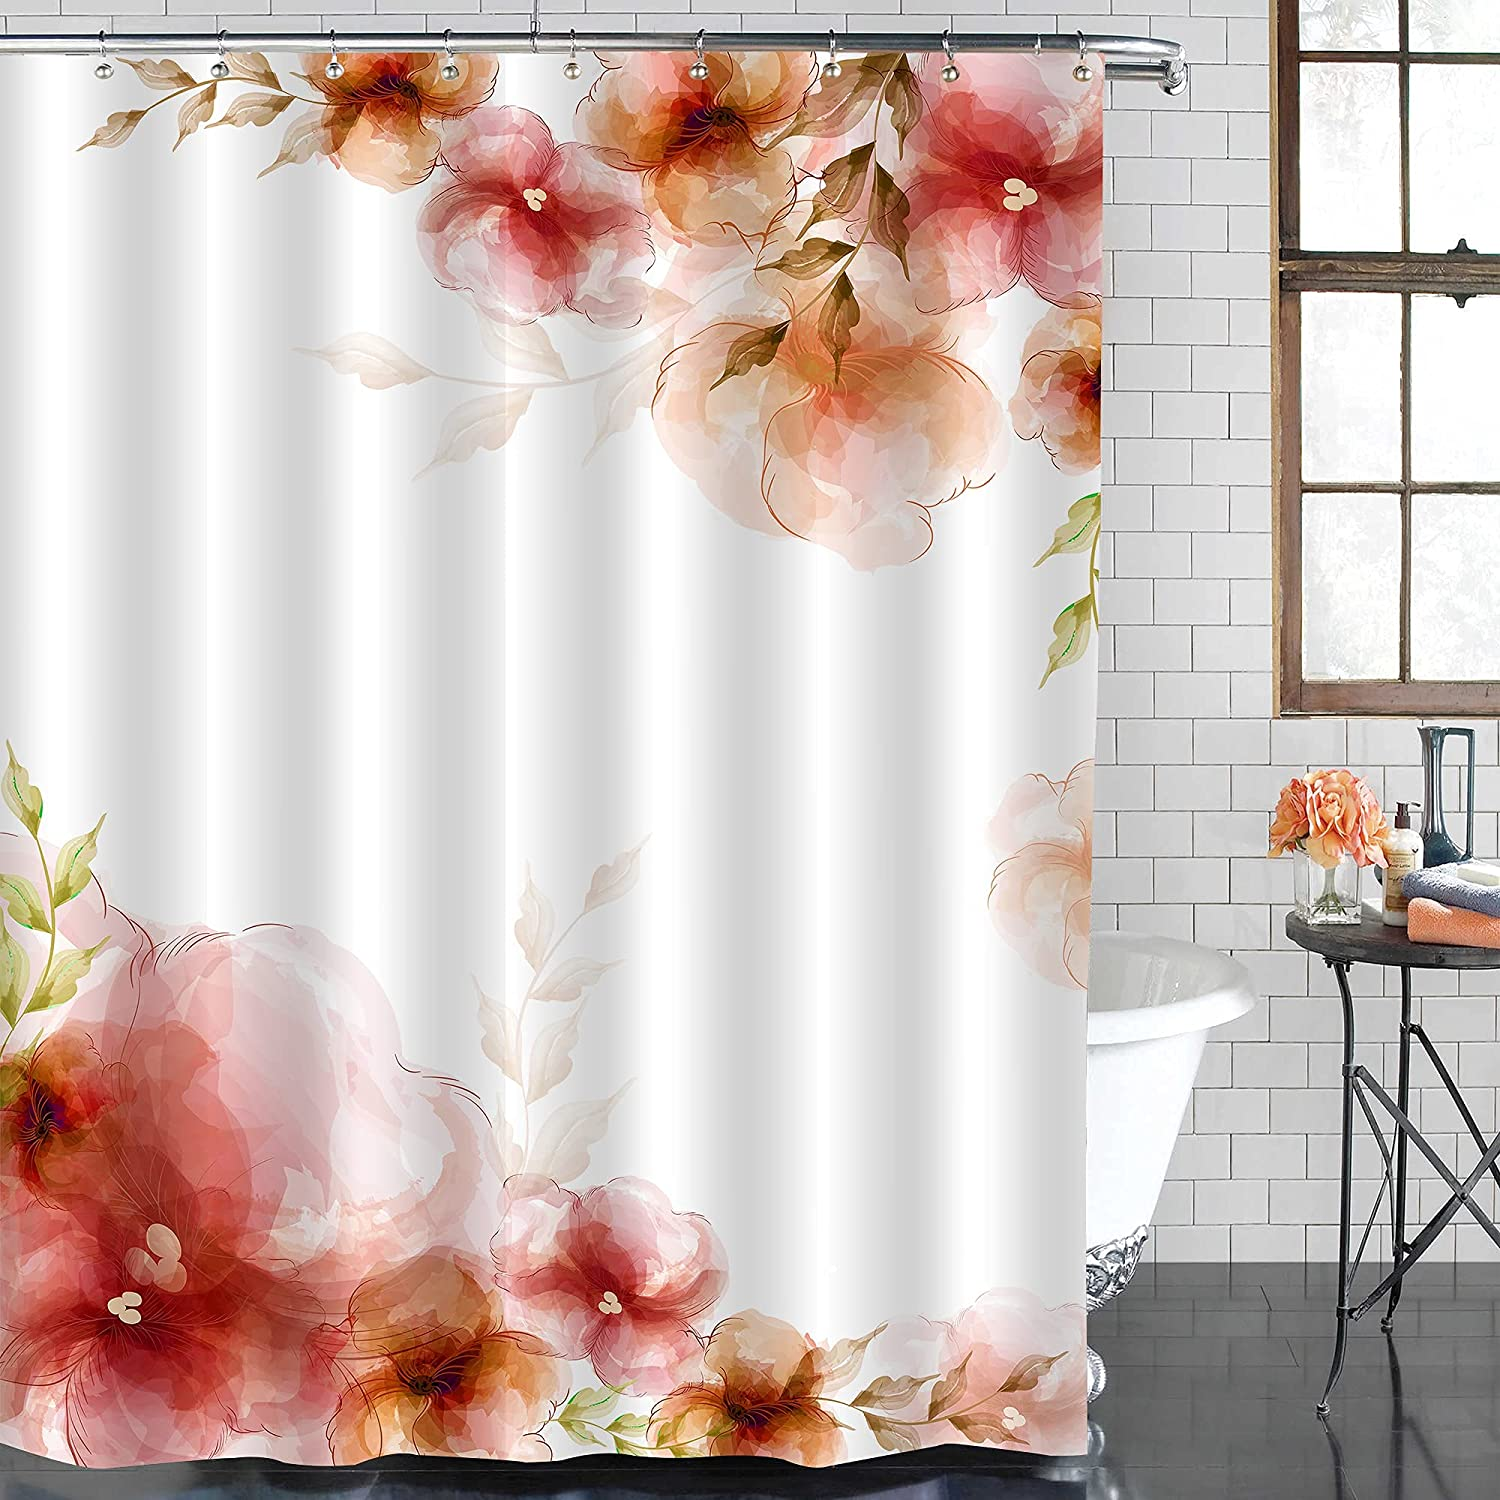 Mitovilla New Orleans Mall Red Shower Curtain Liner Ranking TOP5 72 Floral x Curtai 60